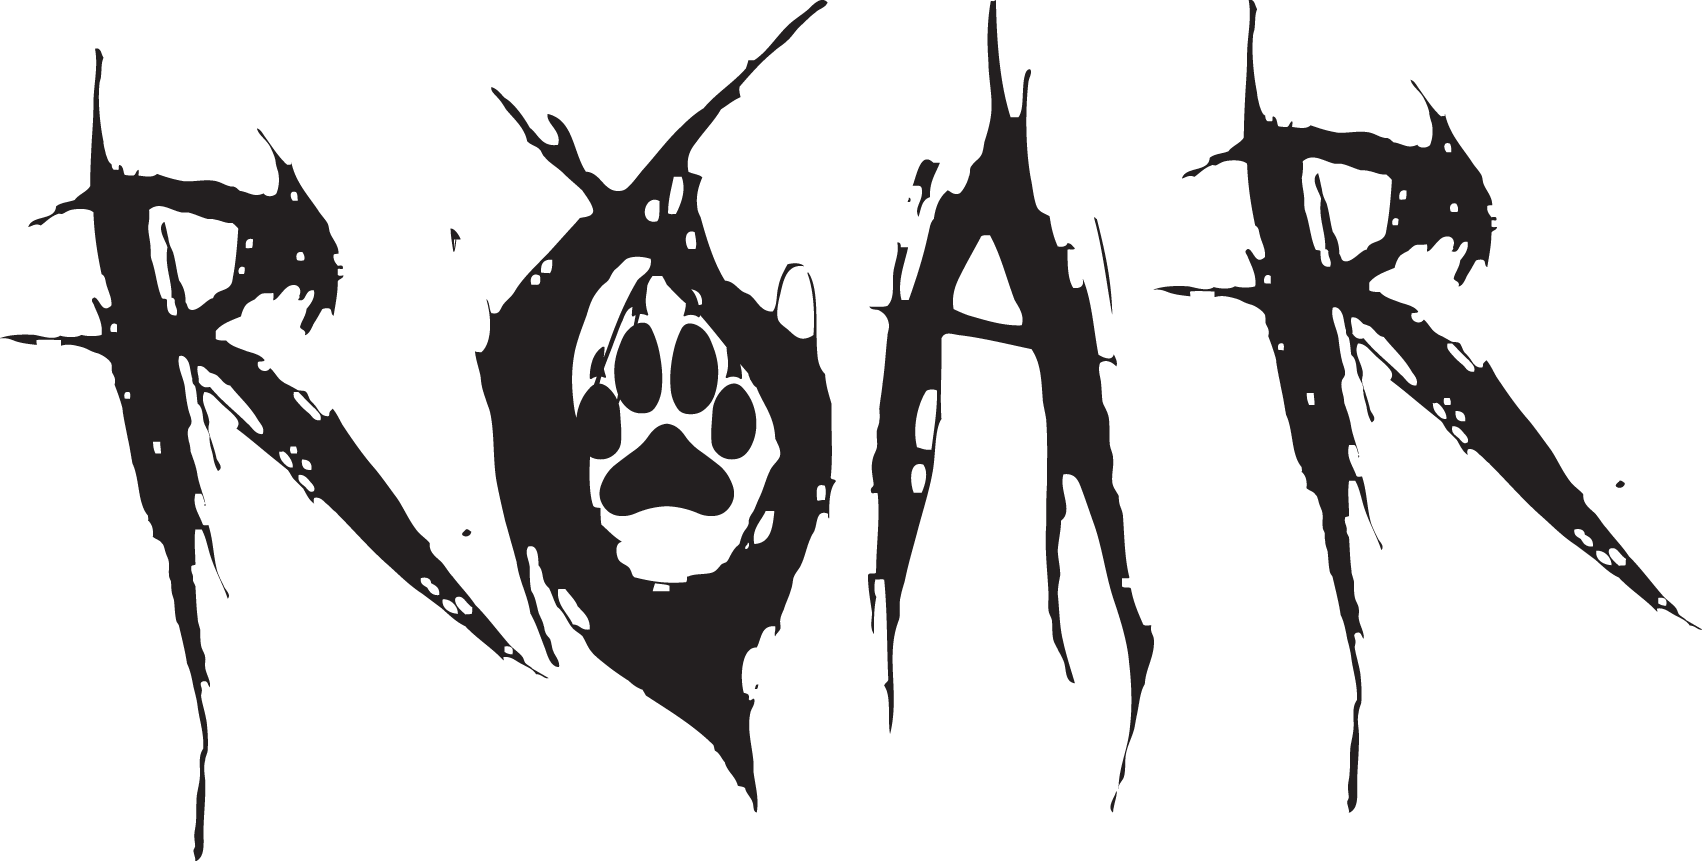 roar-transparent.png